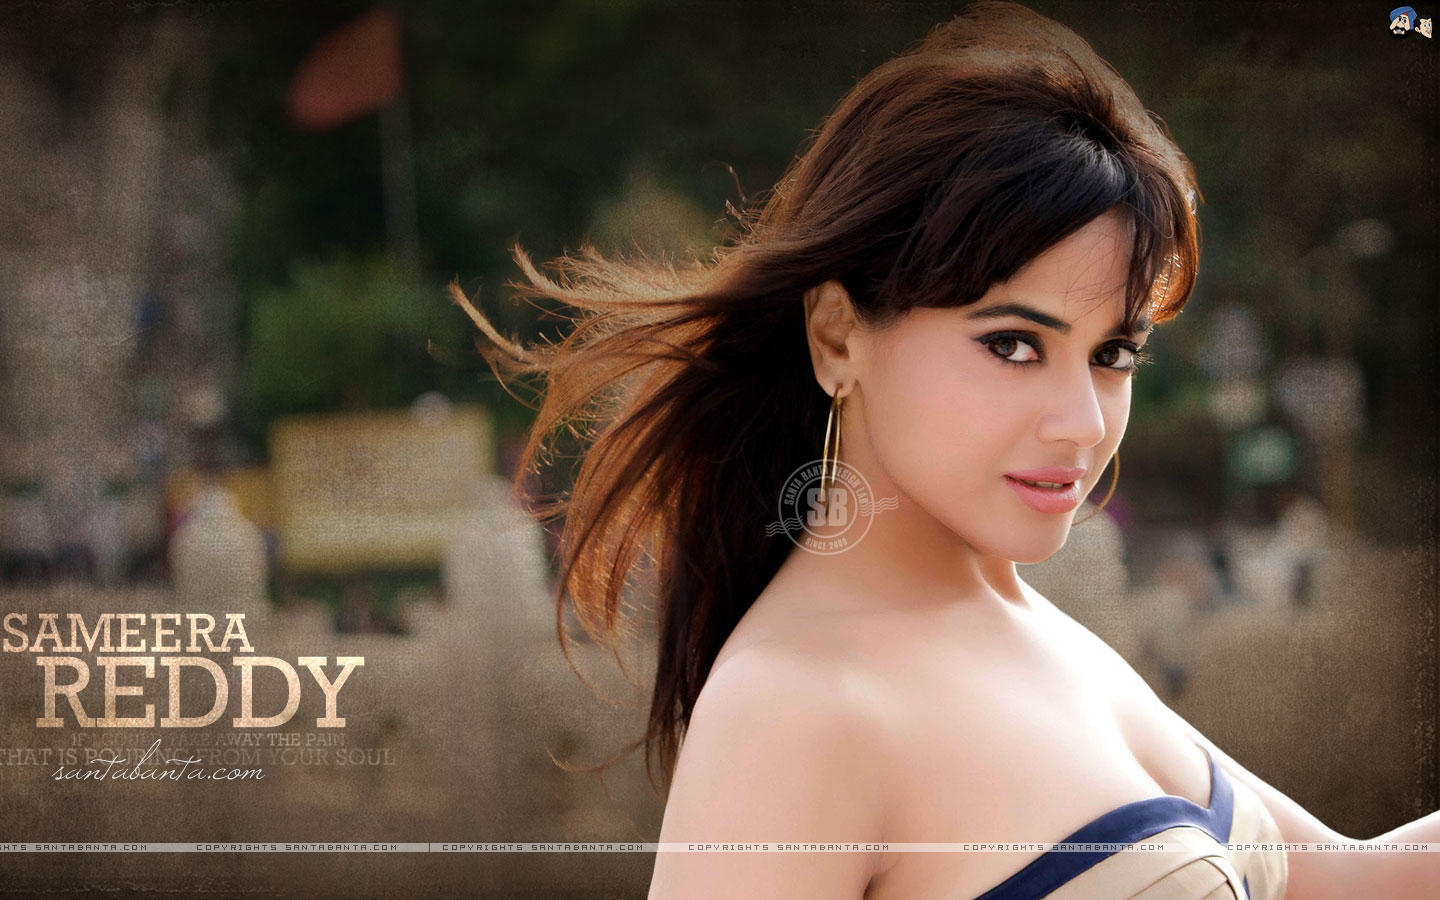 Sameera Reddy Sex 105